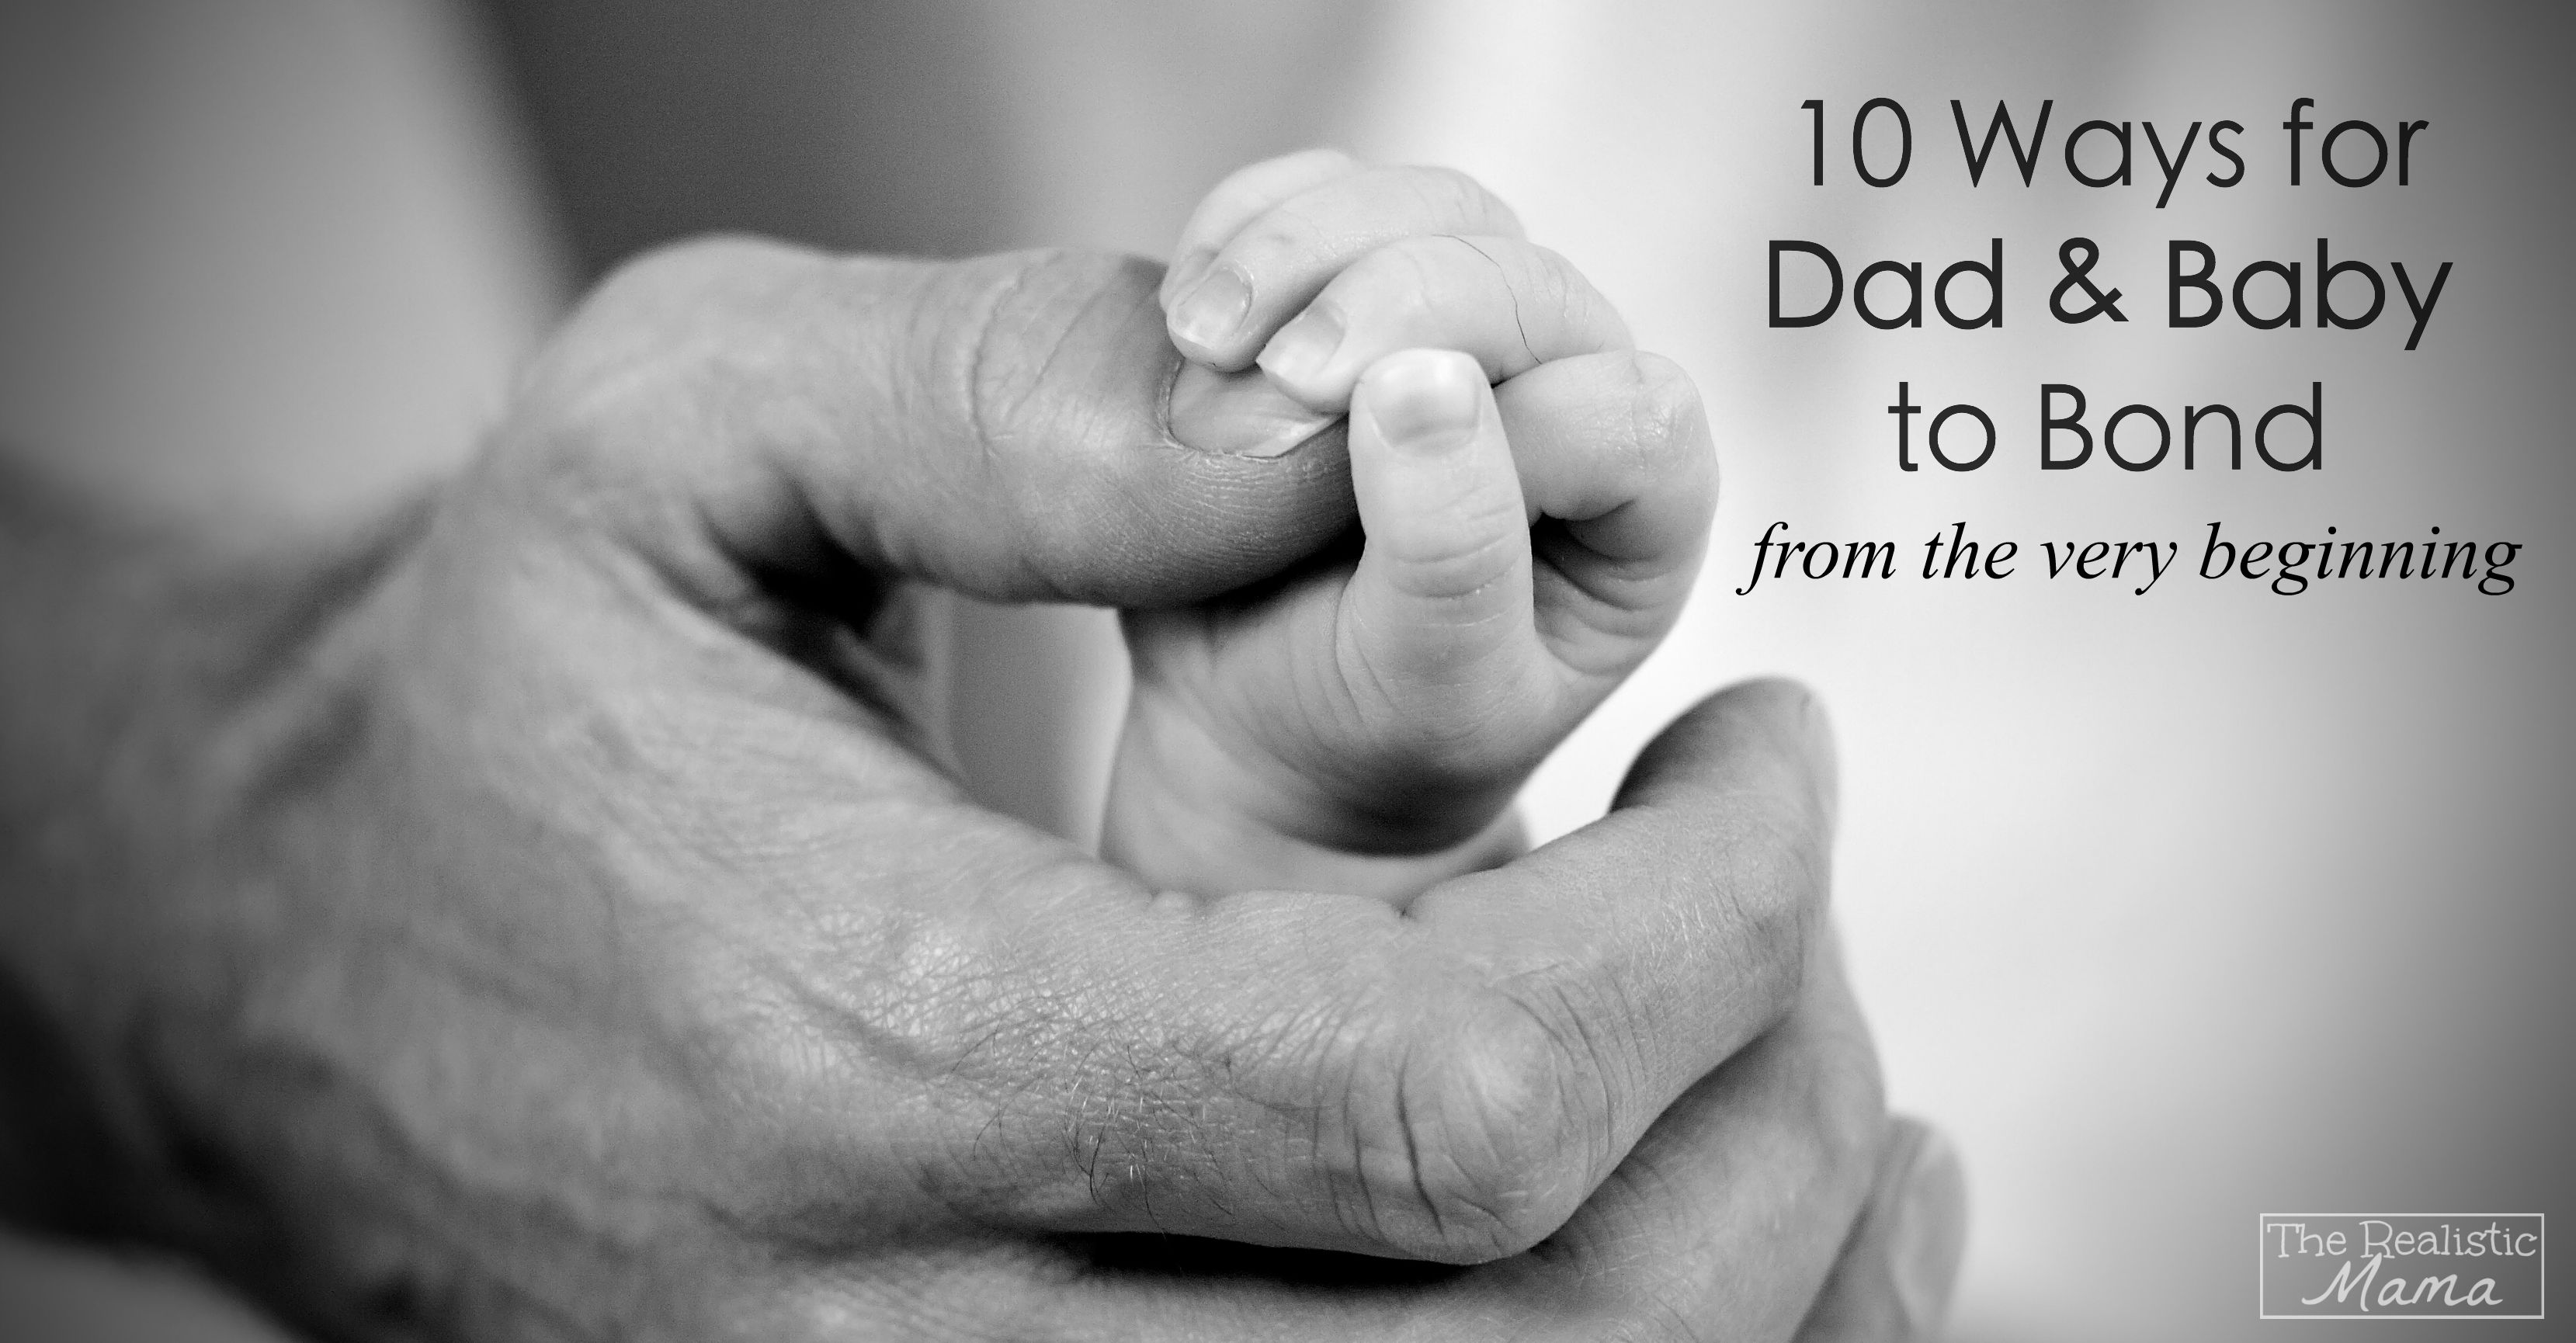 10 Ways for Dad & Baby to Bond